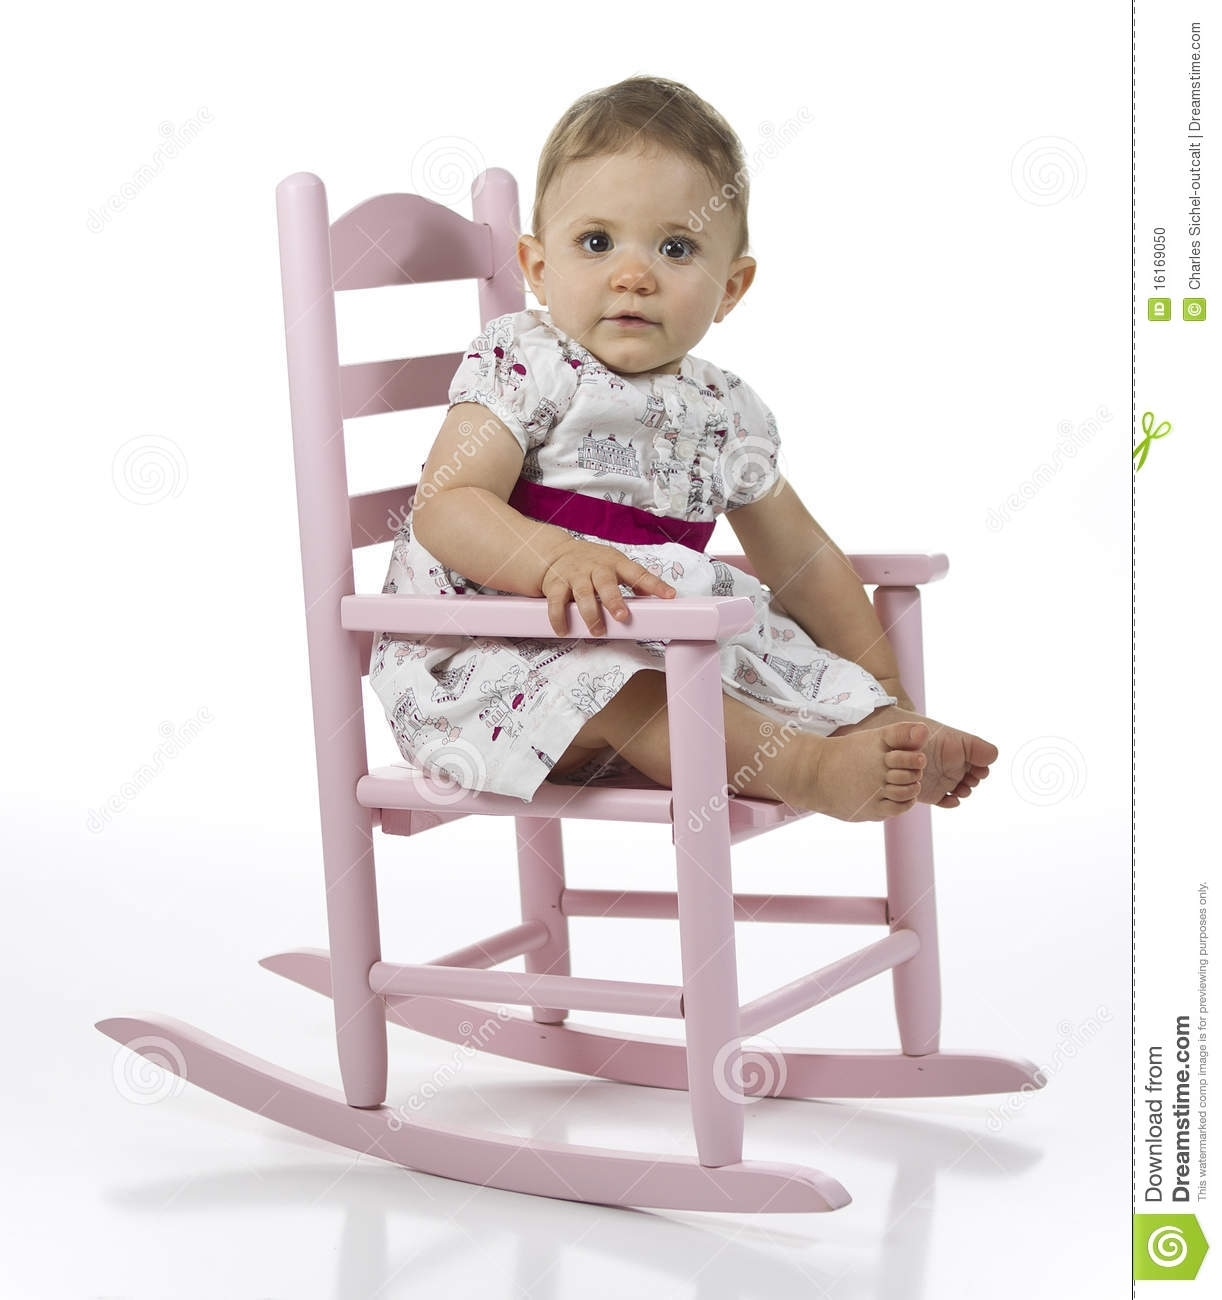 Baby Girl In Rocking Chair Stock Photo (#2 of 15)